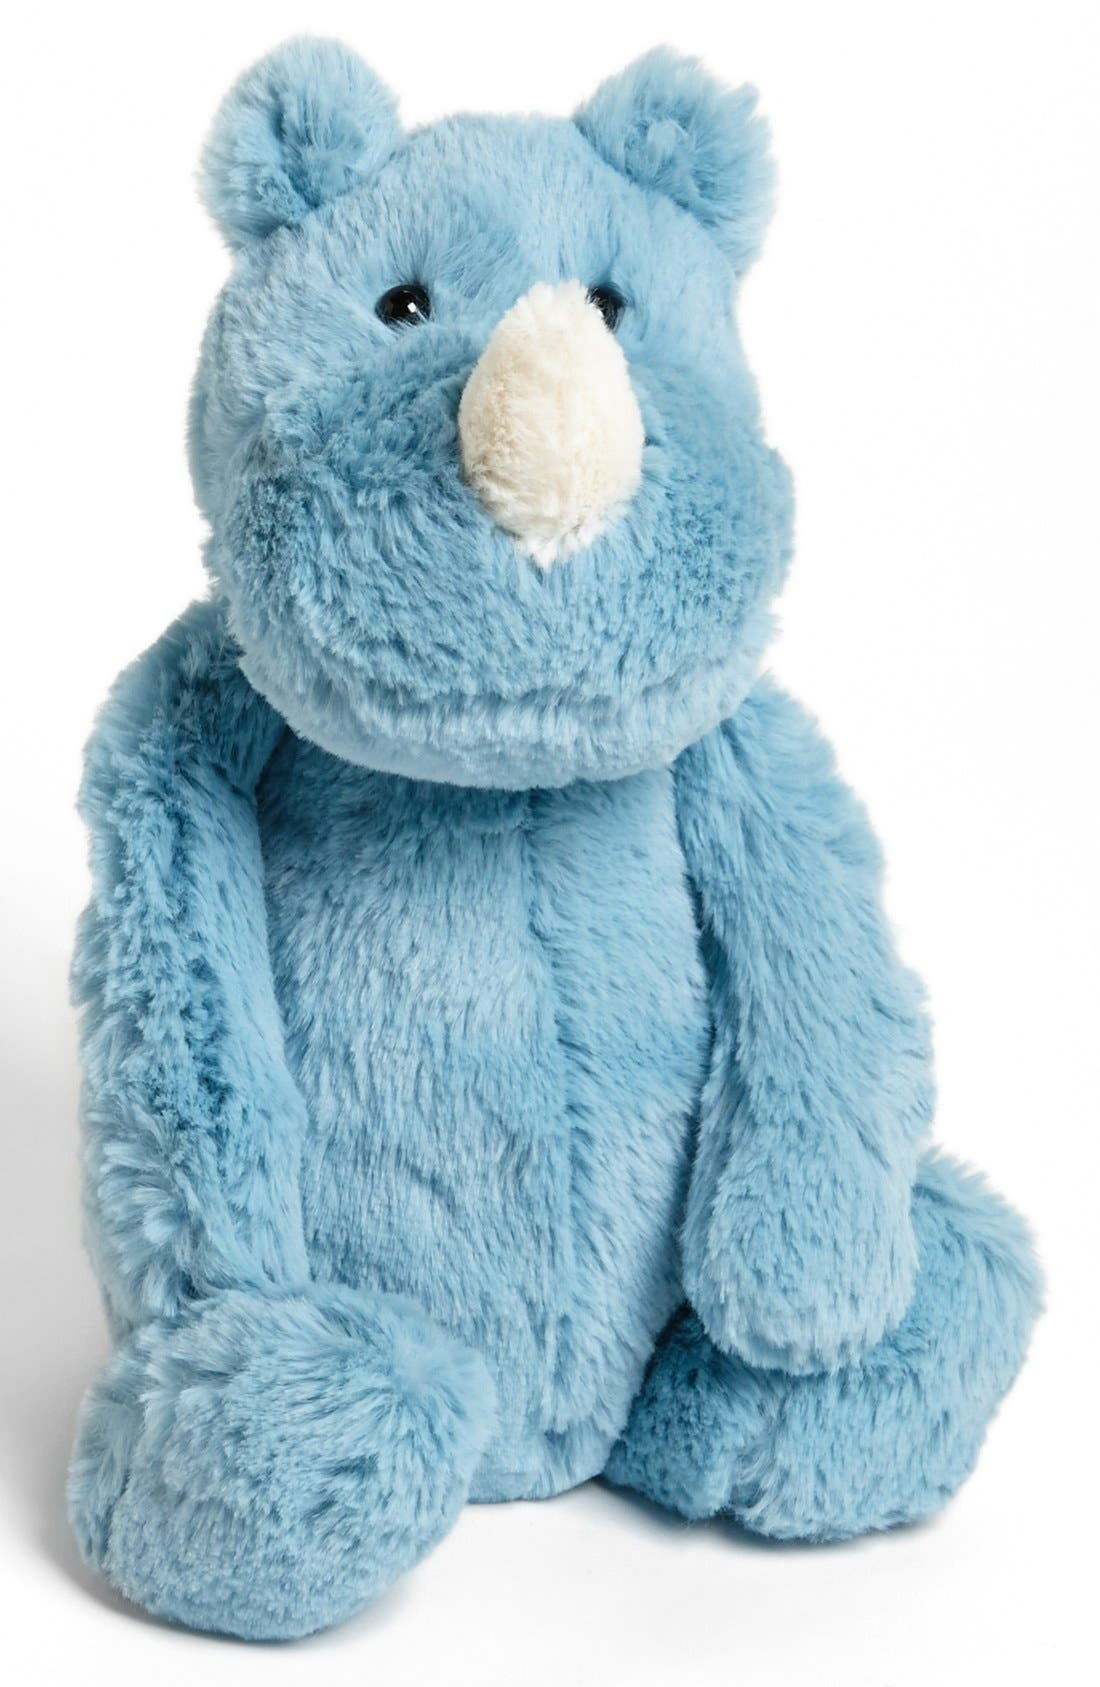 Alternate Image 1 Selected - Jellycat 'Bashful Rhino' Stuffed Animal